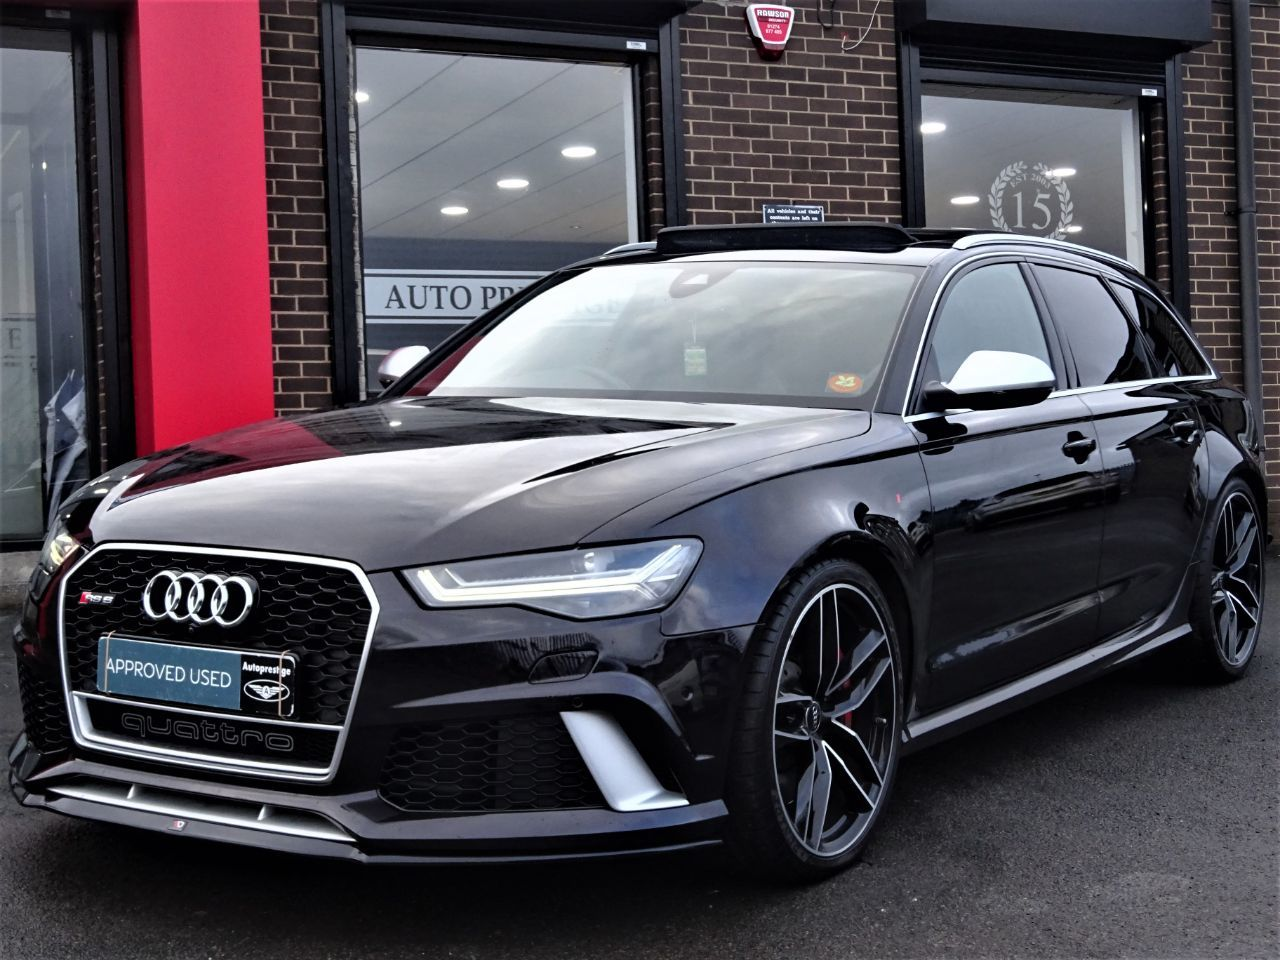 Audi RS6 4.0T FSI Quattro Tip Auto MASSIVE SPECIFICATION 66 REG VERY LOW MILEAGE FROM NEW Estate Petrol Black at Autoprestige Bradford